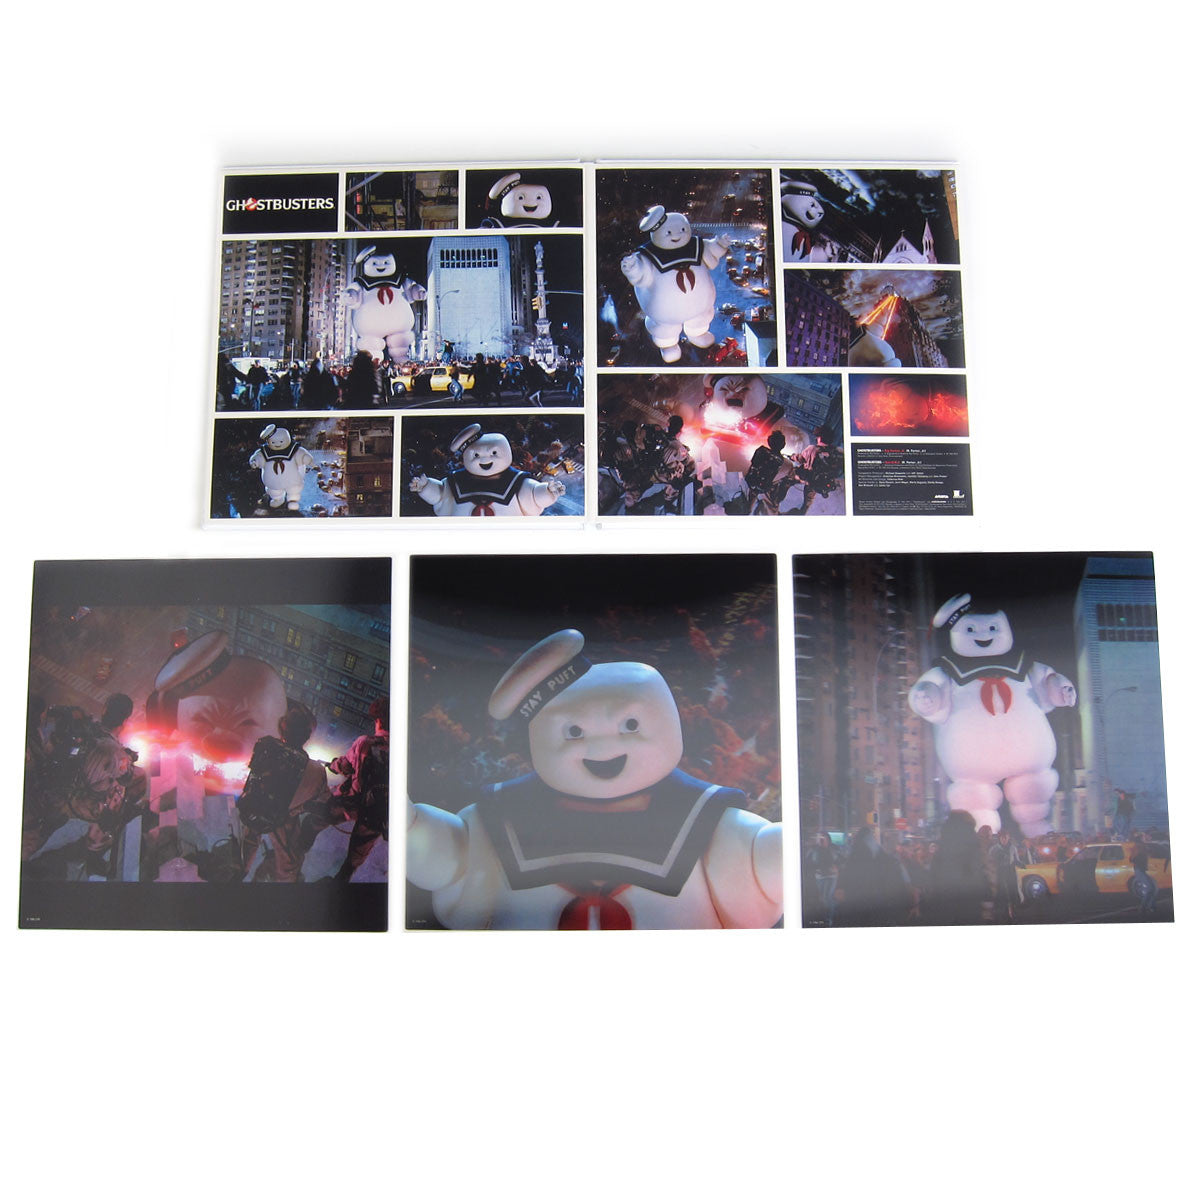 "Ghostbusters: Ghostbusters Stay Puft Edition (Colored Vinyl) Vinyl 12"" detail 2"